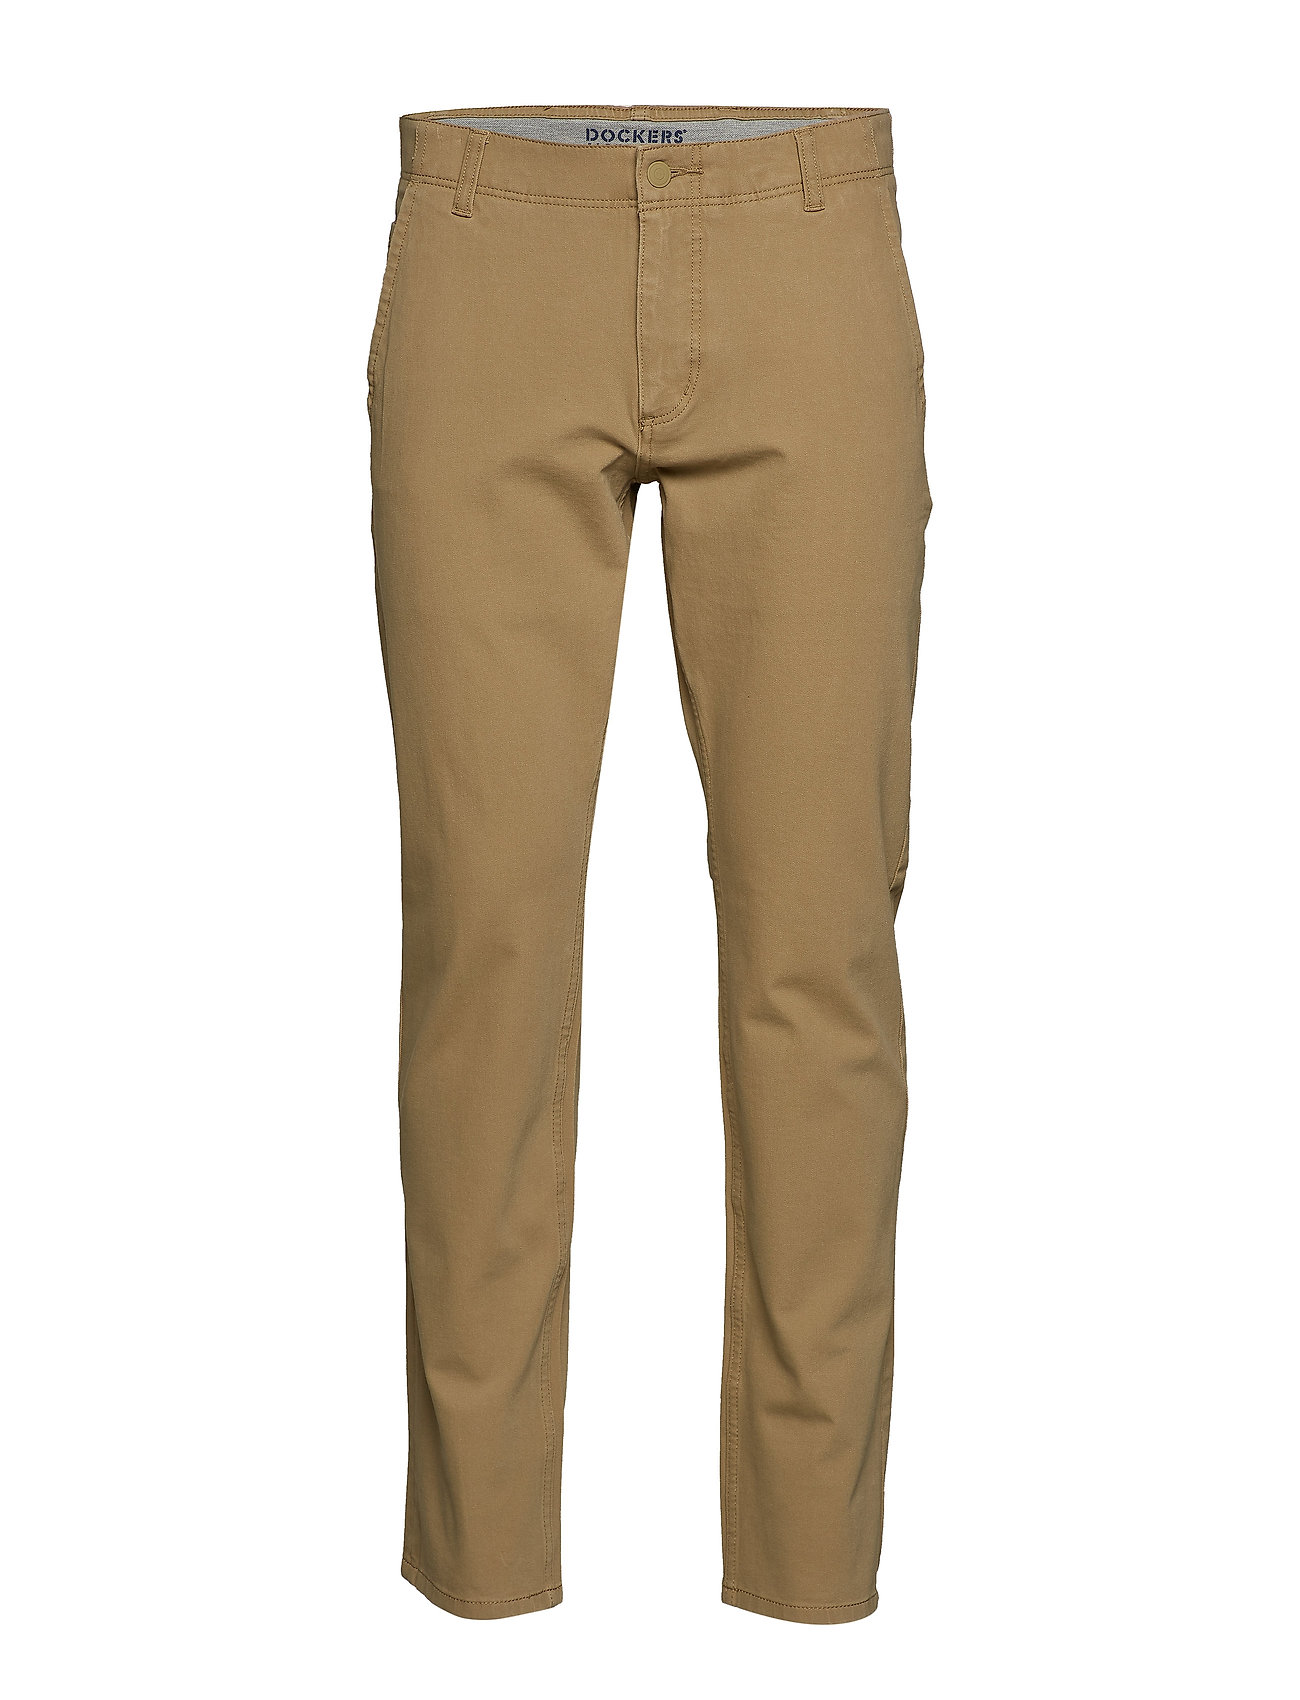 Dockers ALPHA KHAKI 360 NEW BRITISH KH - NEUTRALS